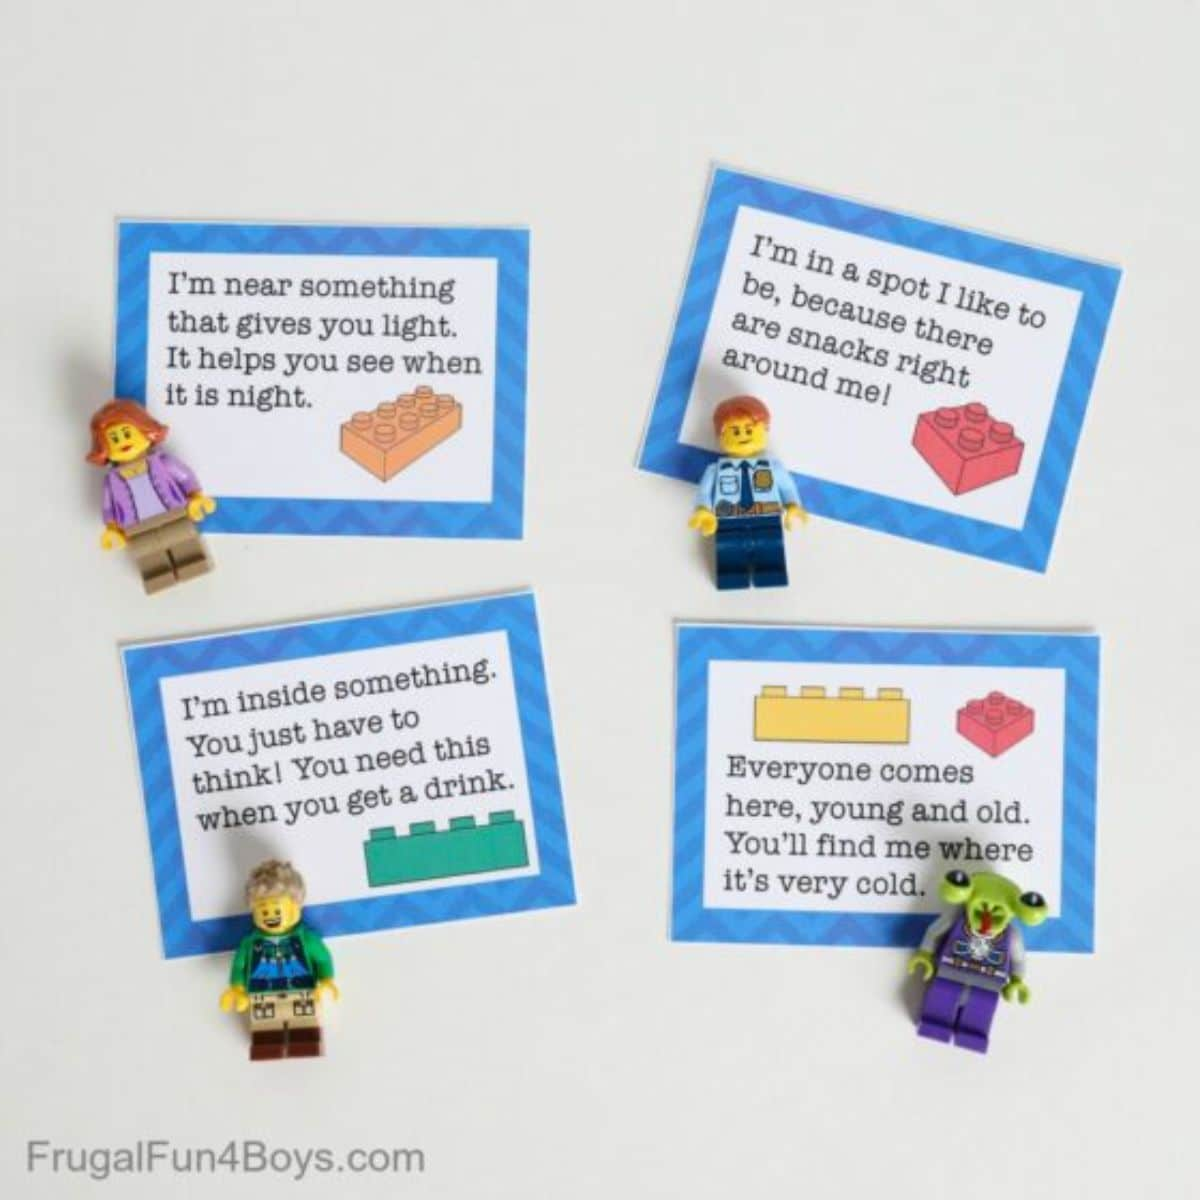 4 bordered cards are laid out with clues on them and a lego figure in front of them